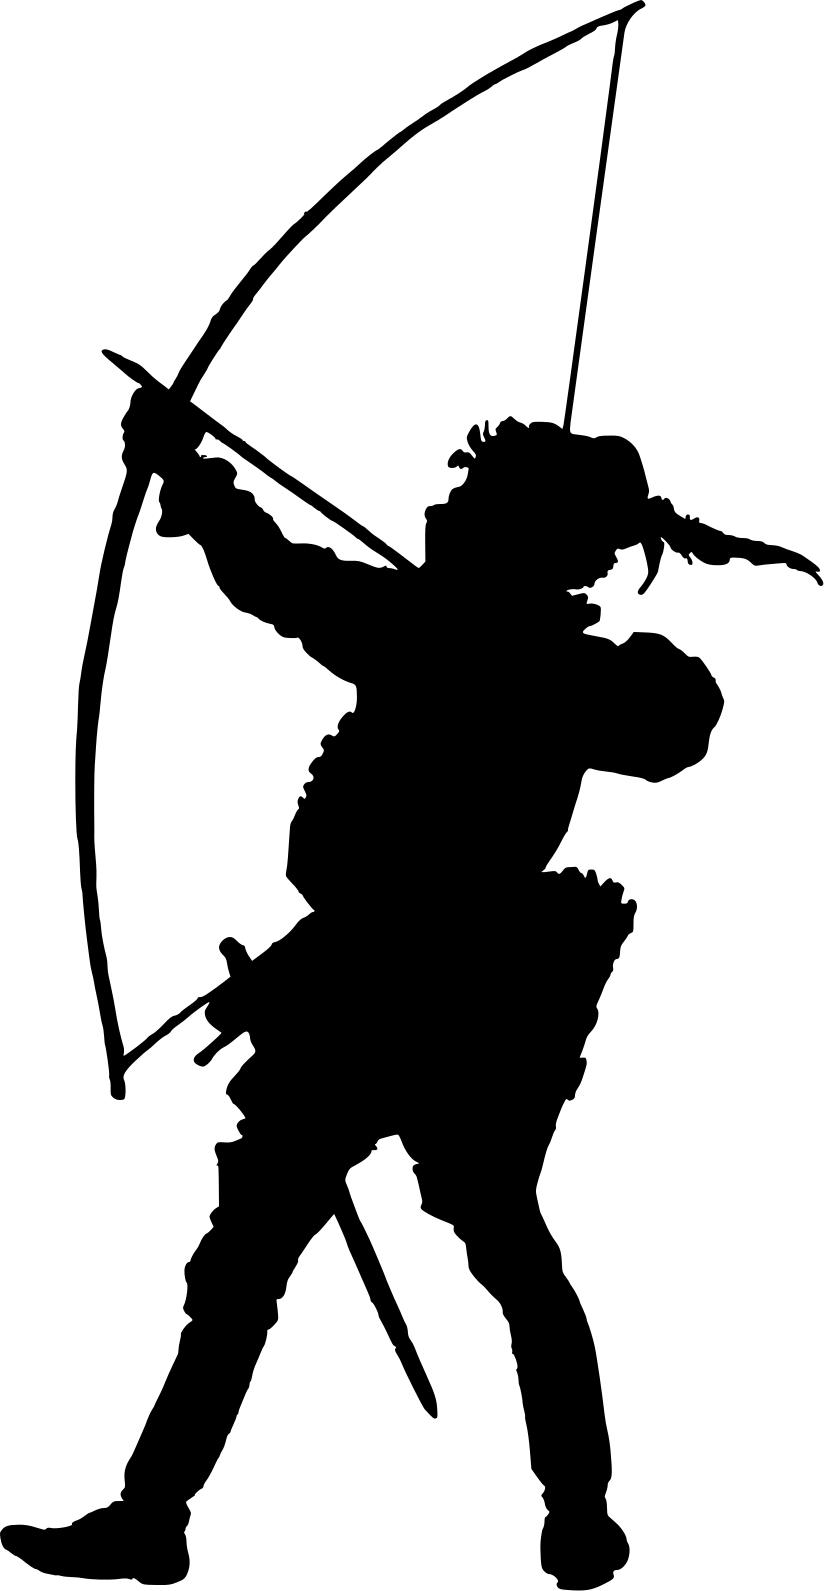 Archery silhouette at getdrawings. Archer clipart bowman